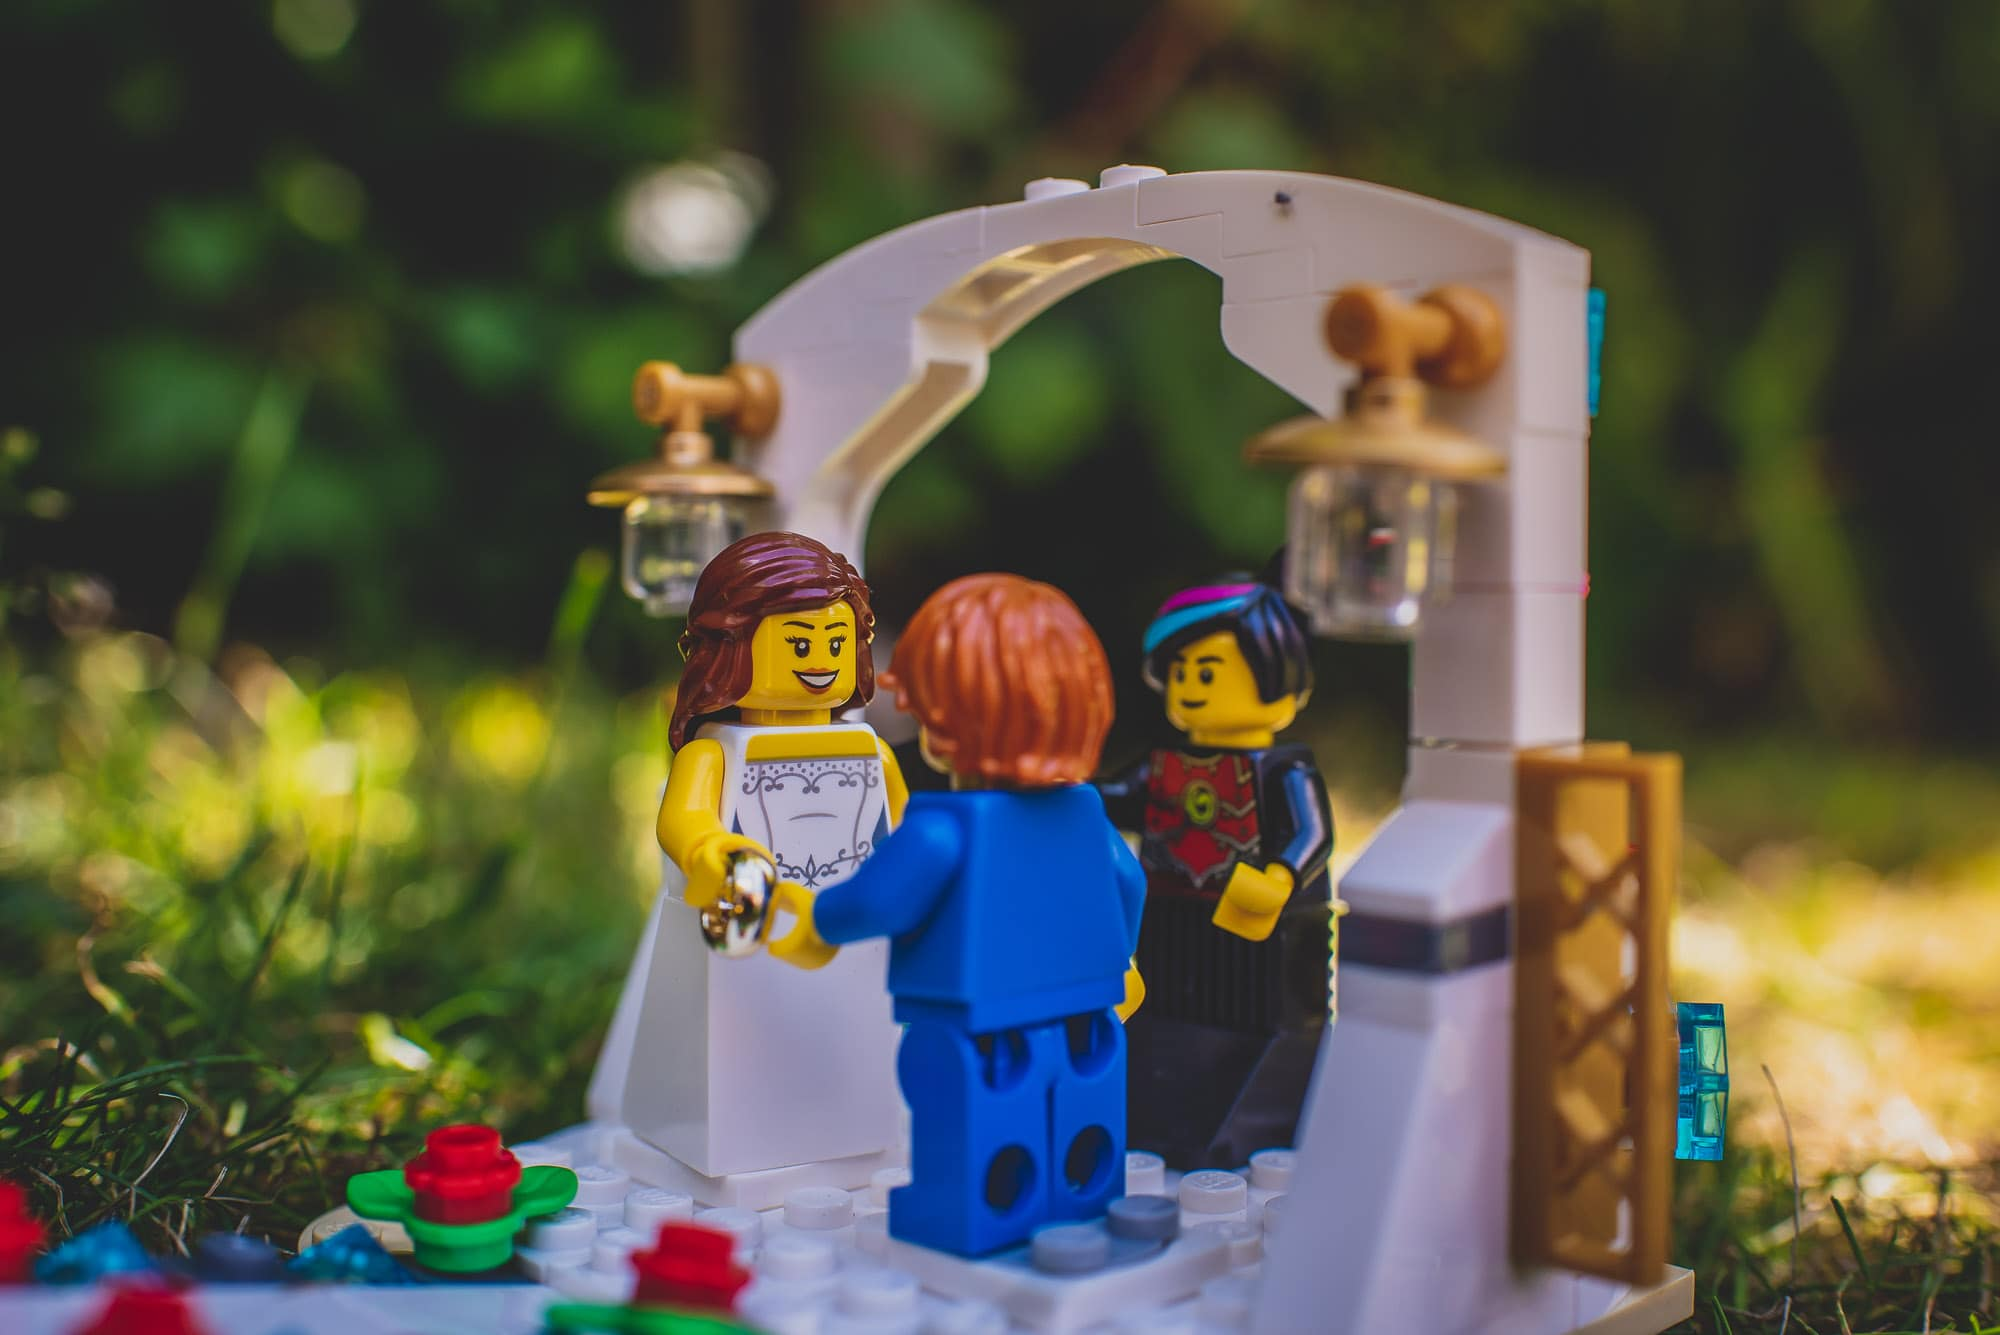 Groom puts ring on the lego Bride's ring finger